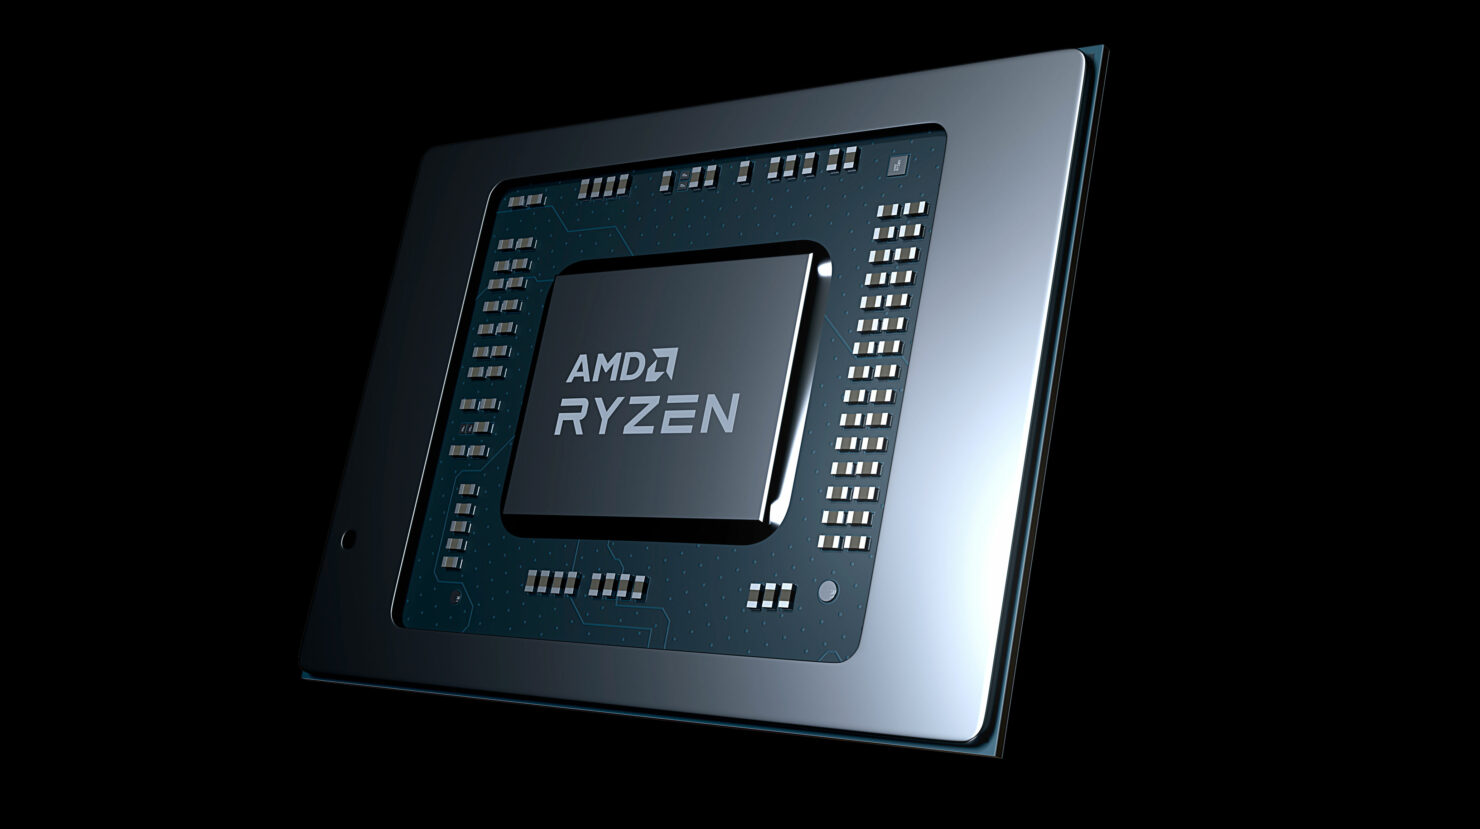 amd-ryzen-5000-series-cpus-are-receiving-price-cuts-across-the-board-ahead-of-the-intel-alder-lake-s-launch